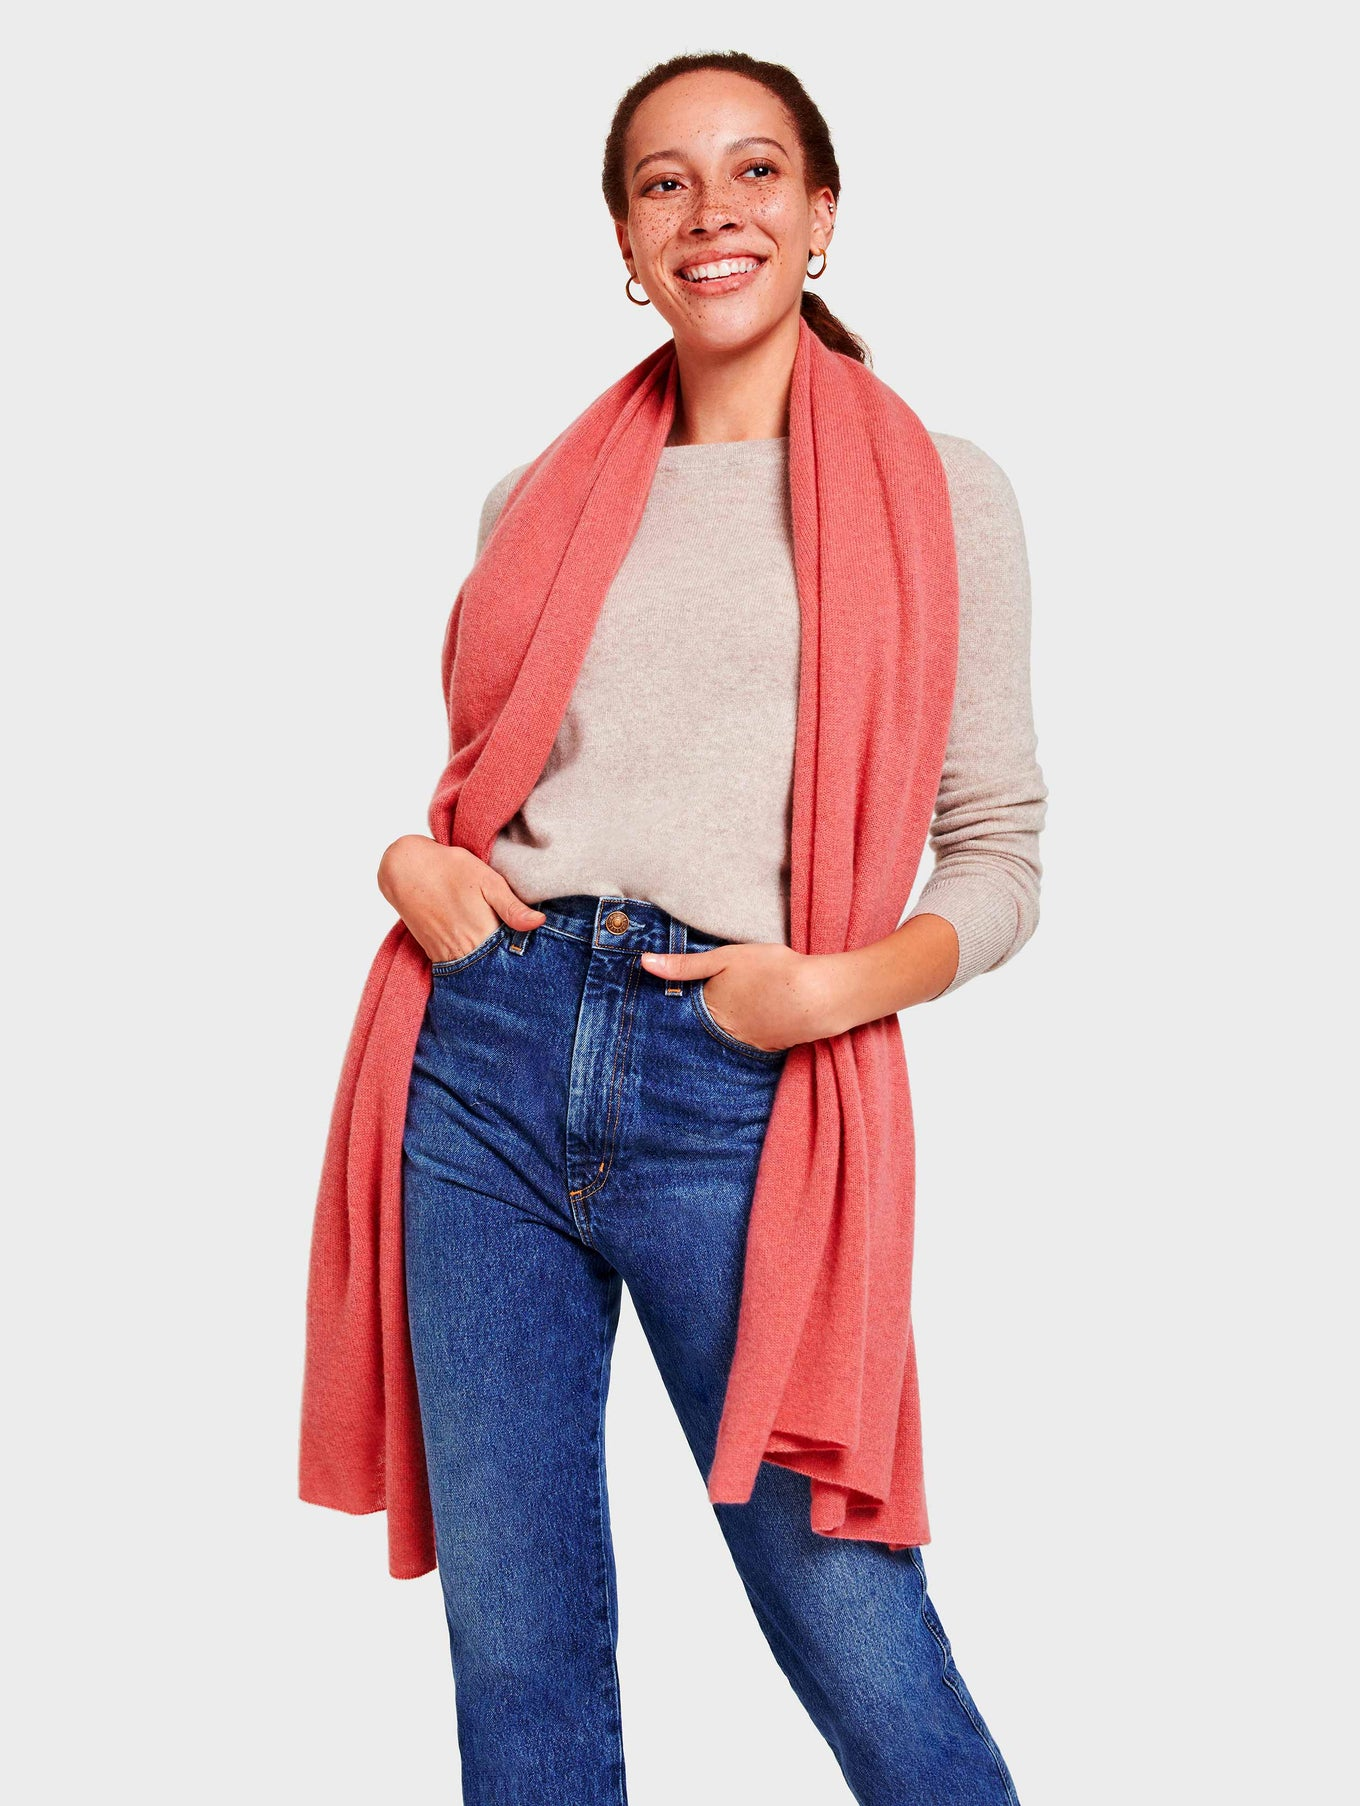 Cashmere Travel Wrap - Pink Opal Heather - Image 1